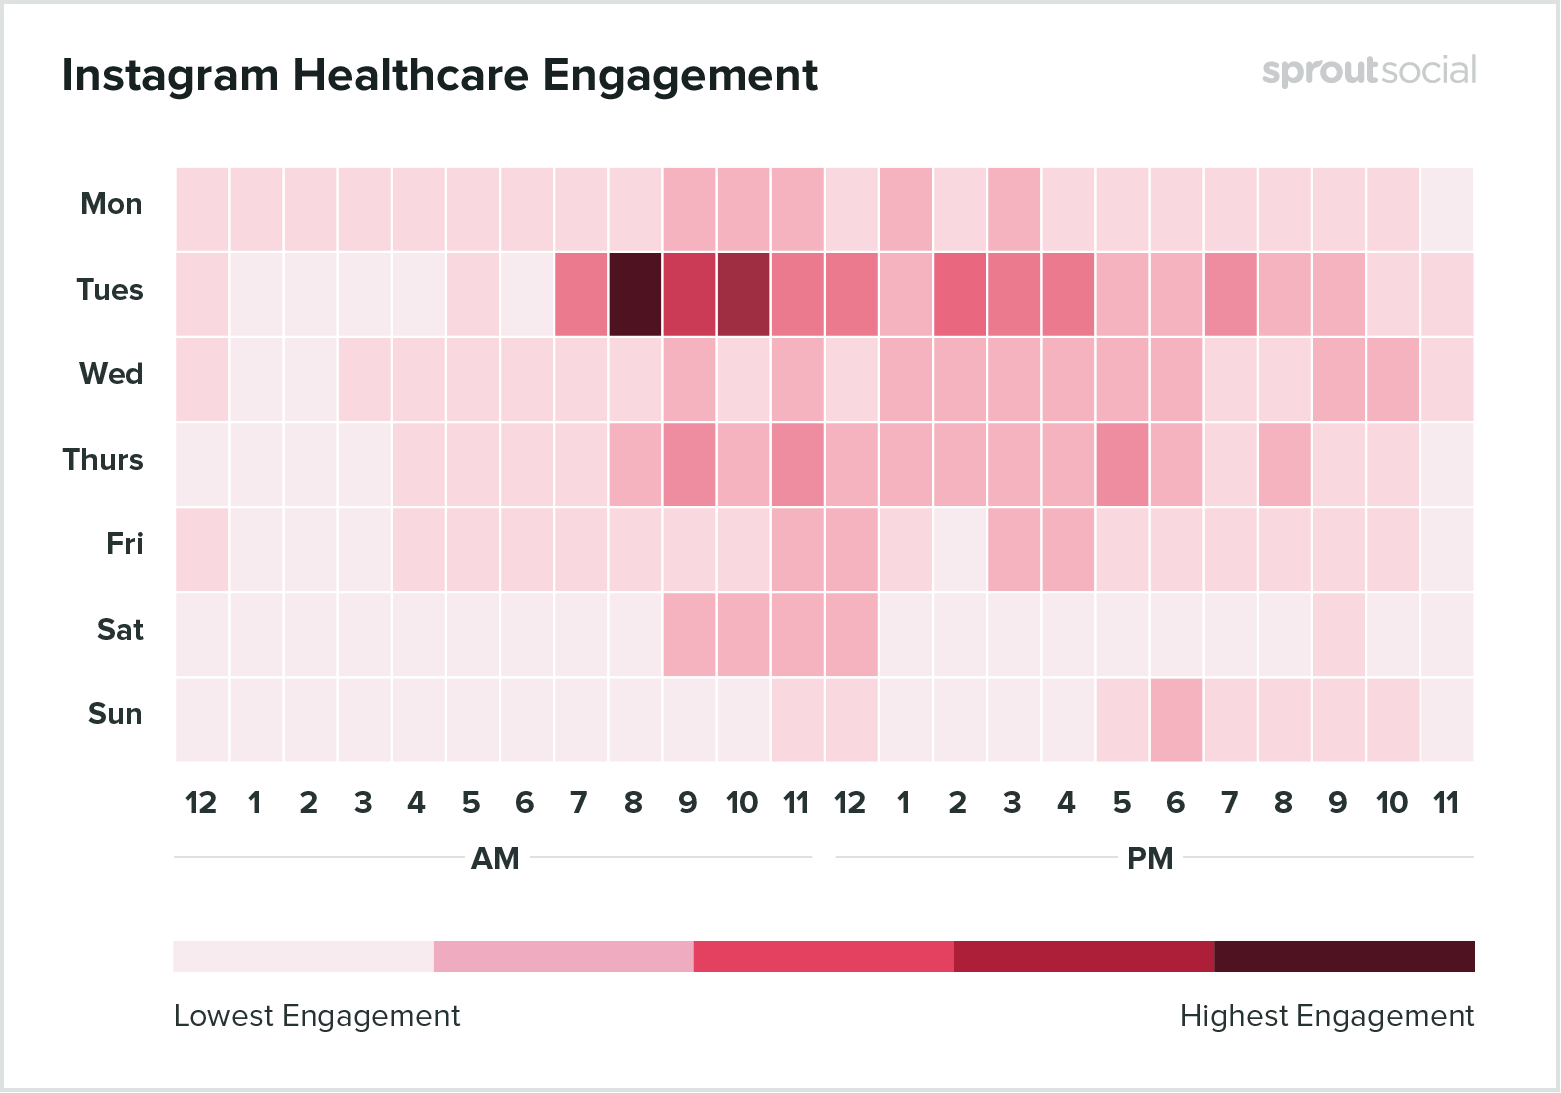 Best times to post on Instagram for healthcare 2020